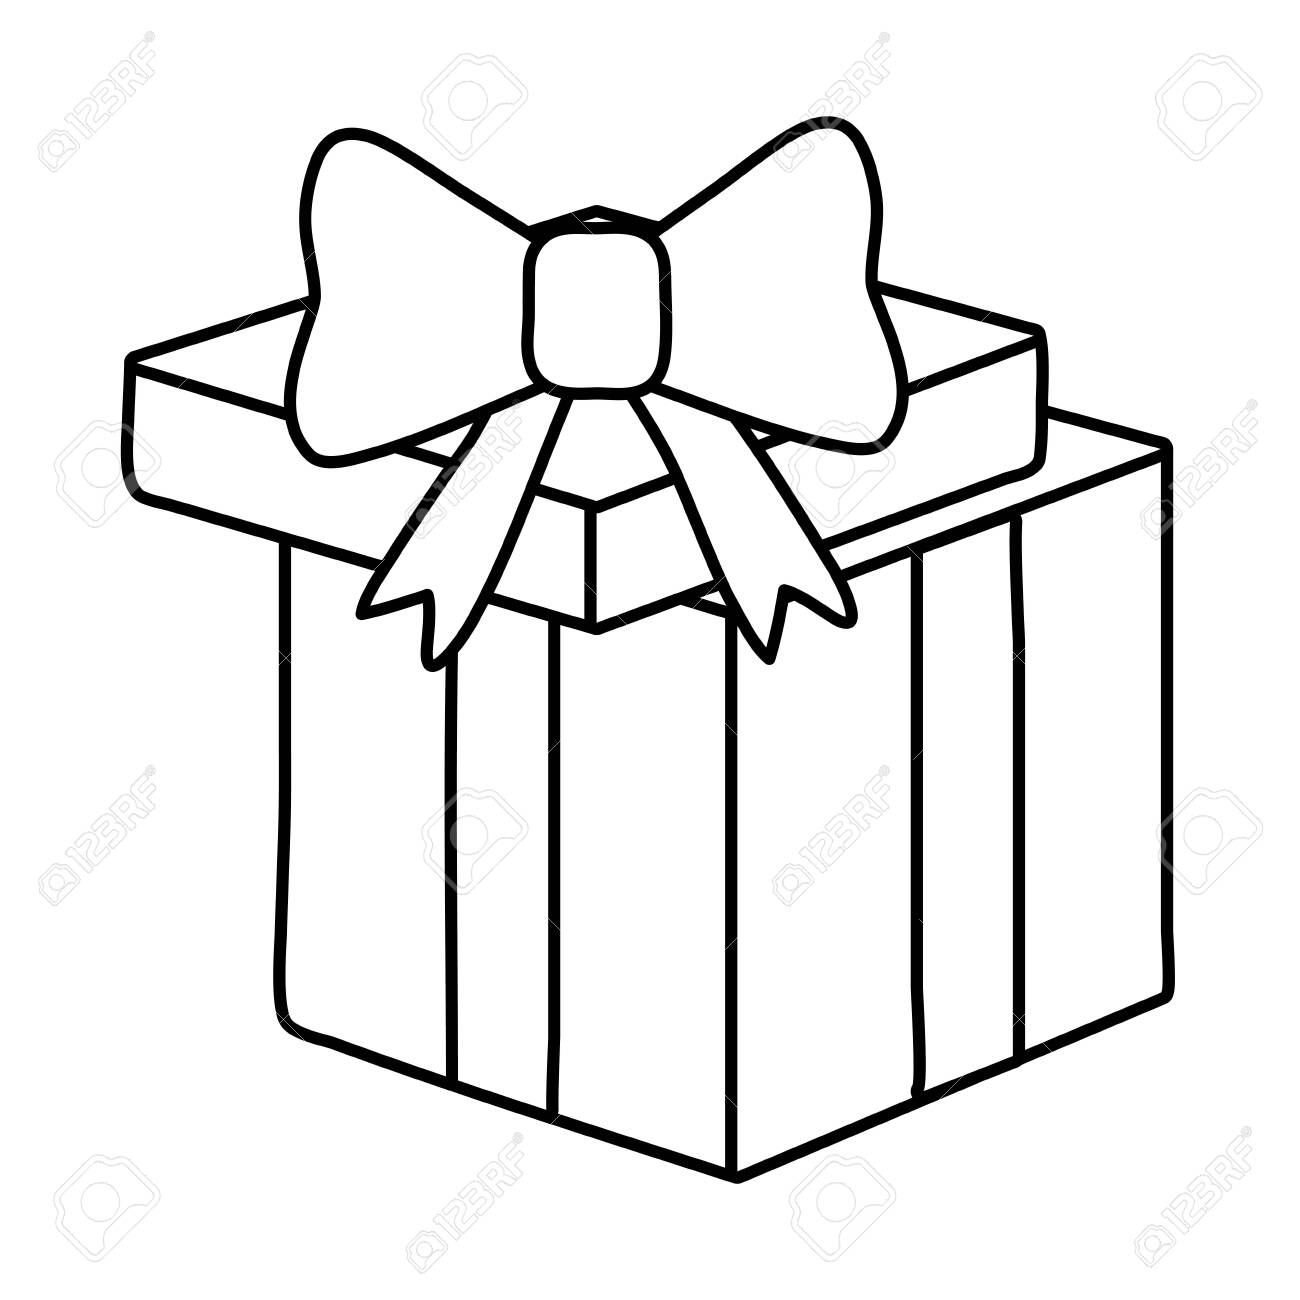 Gift Box Icon Cartoon Black And White Vector Illustration Graphic Royalty Free Cliparts Vectors And Stock Illustration Image 122868456